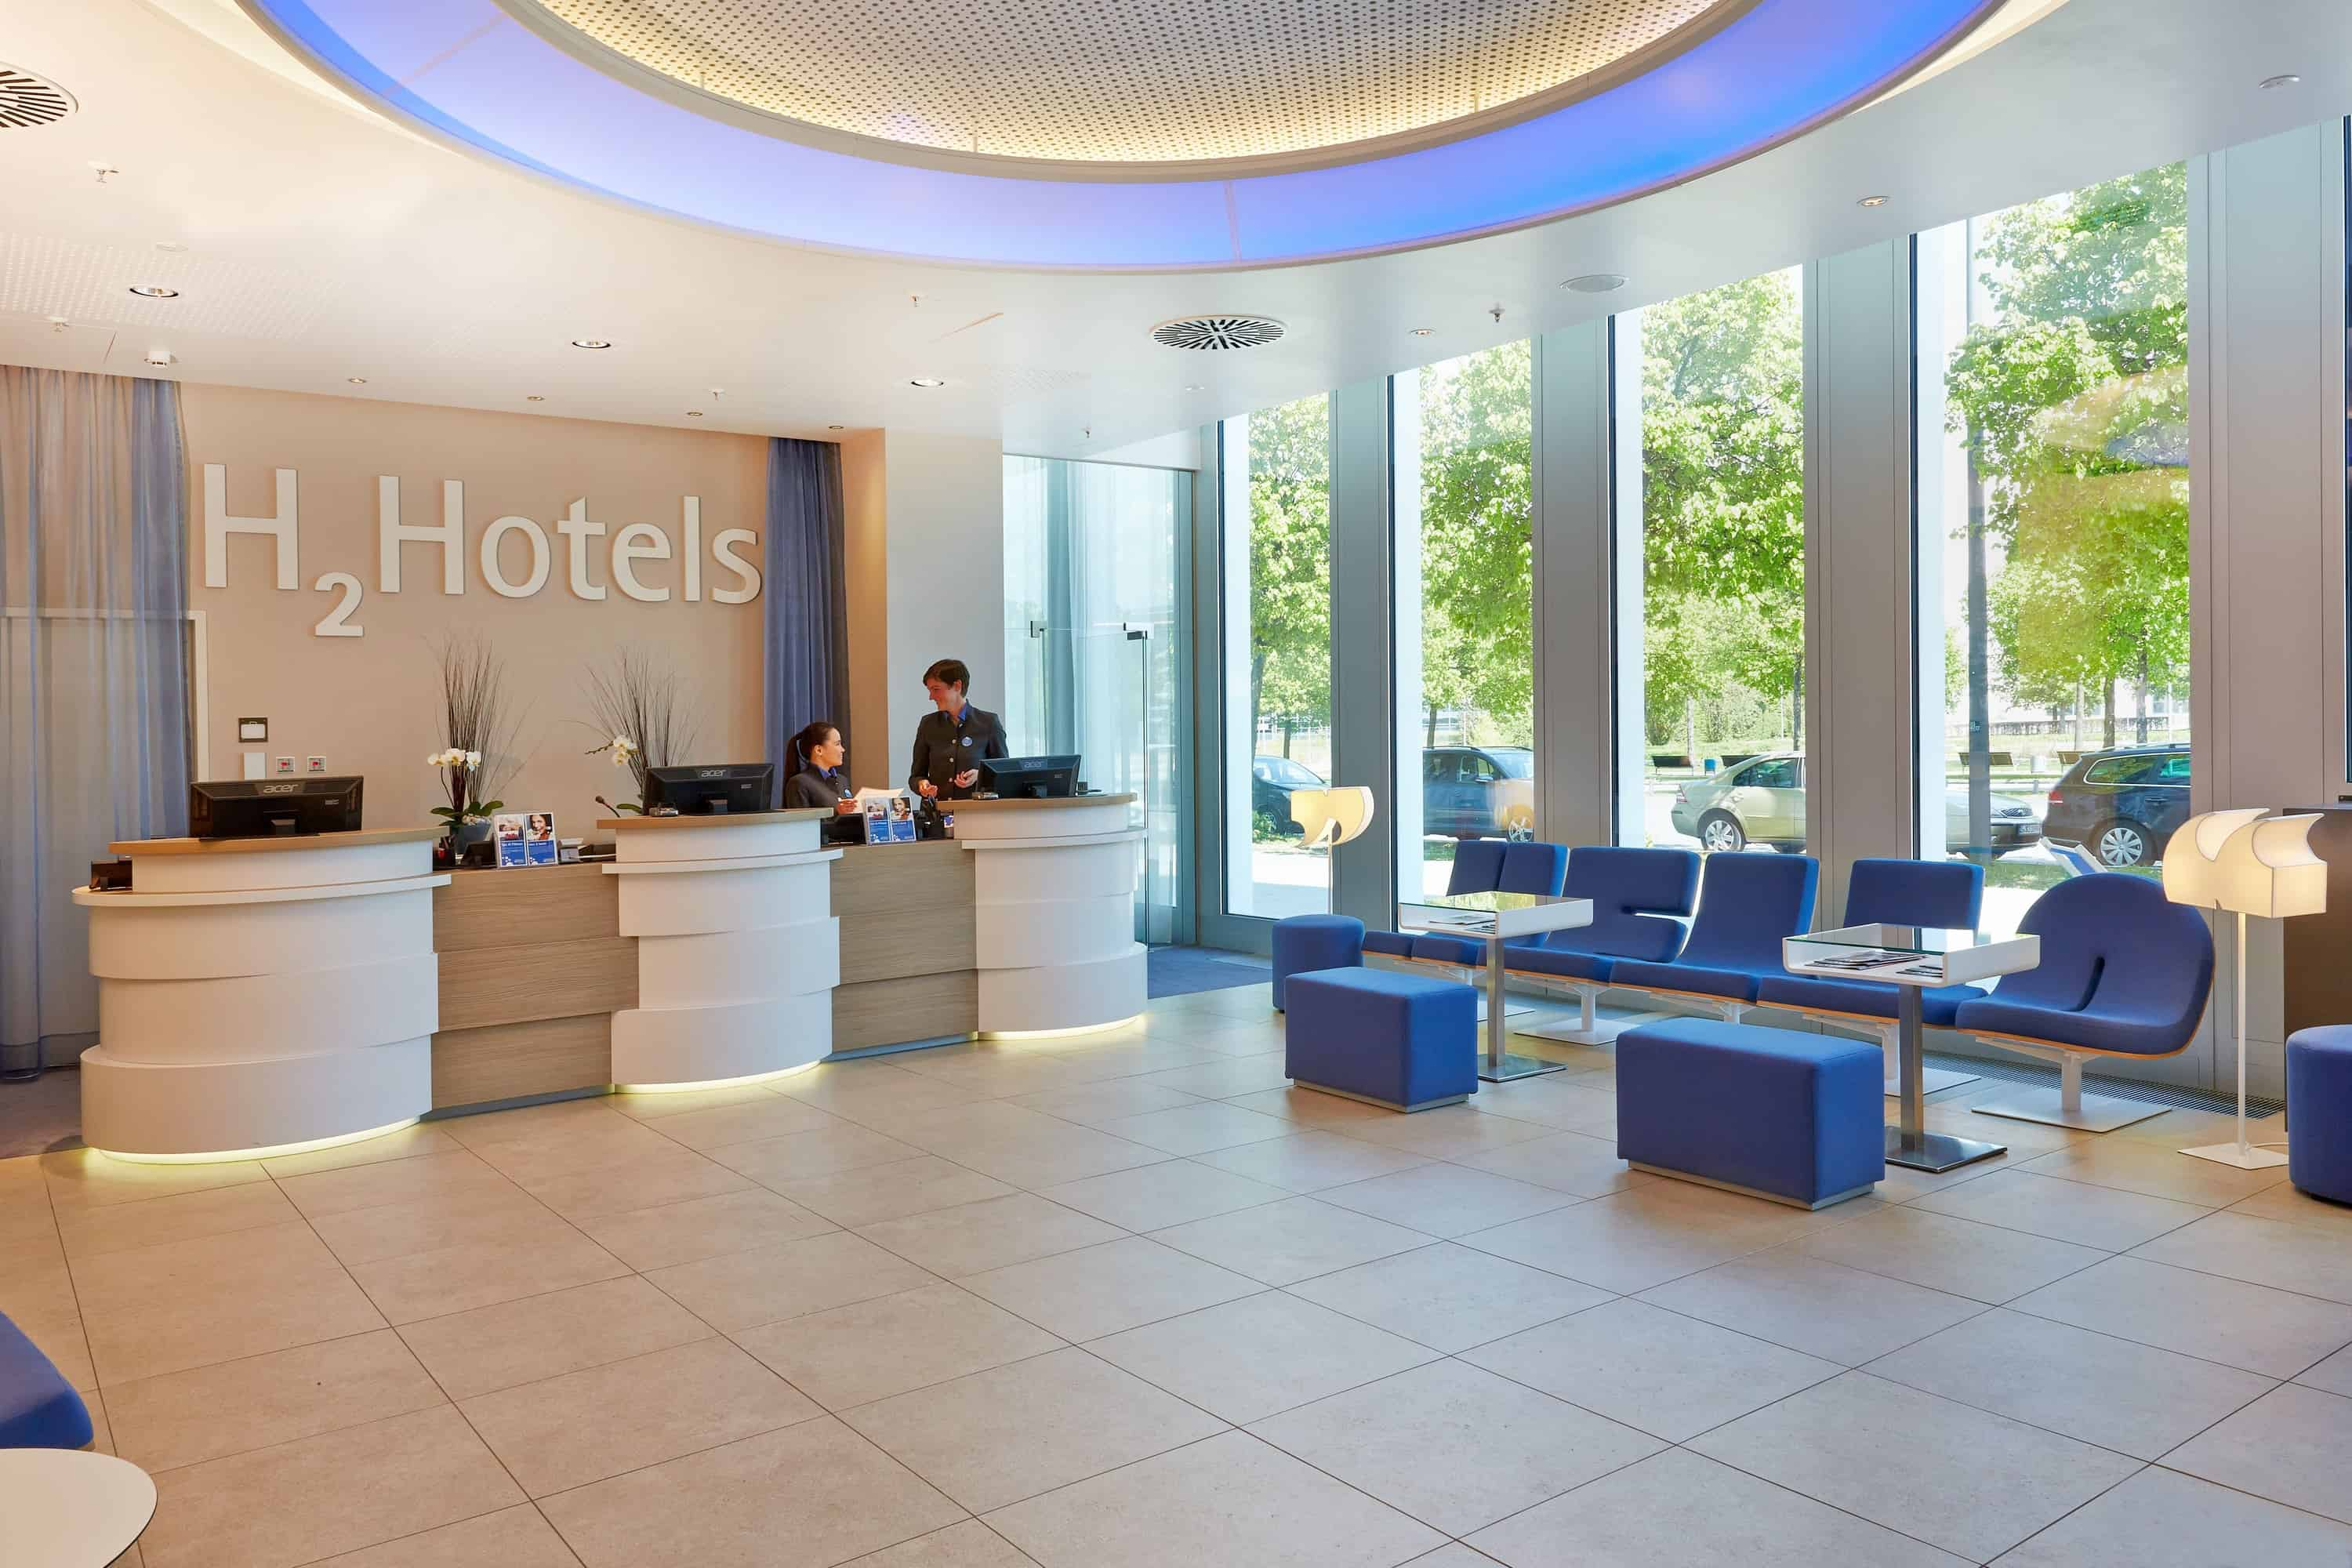 h-hotels_empfang-05-h2-hotel-muenchen-messe_L (max. 3000px) _d4c53d8f